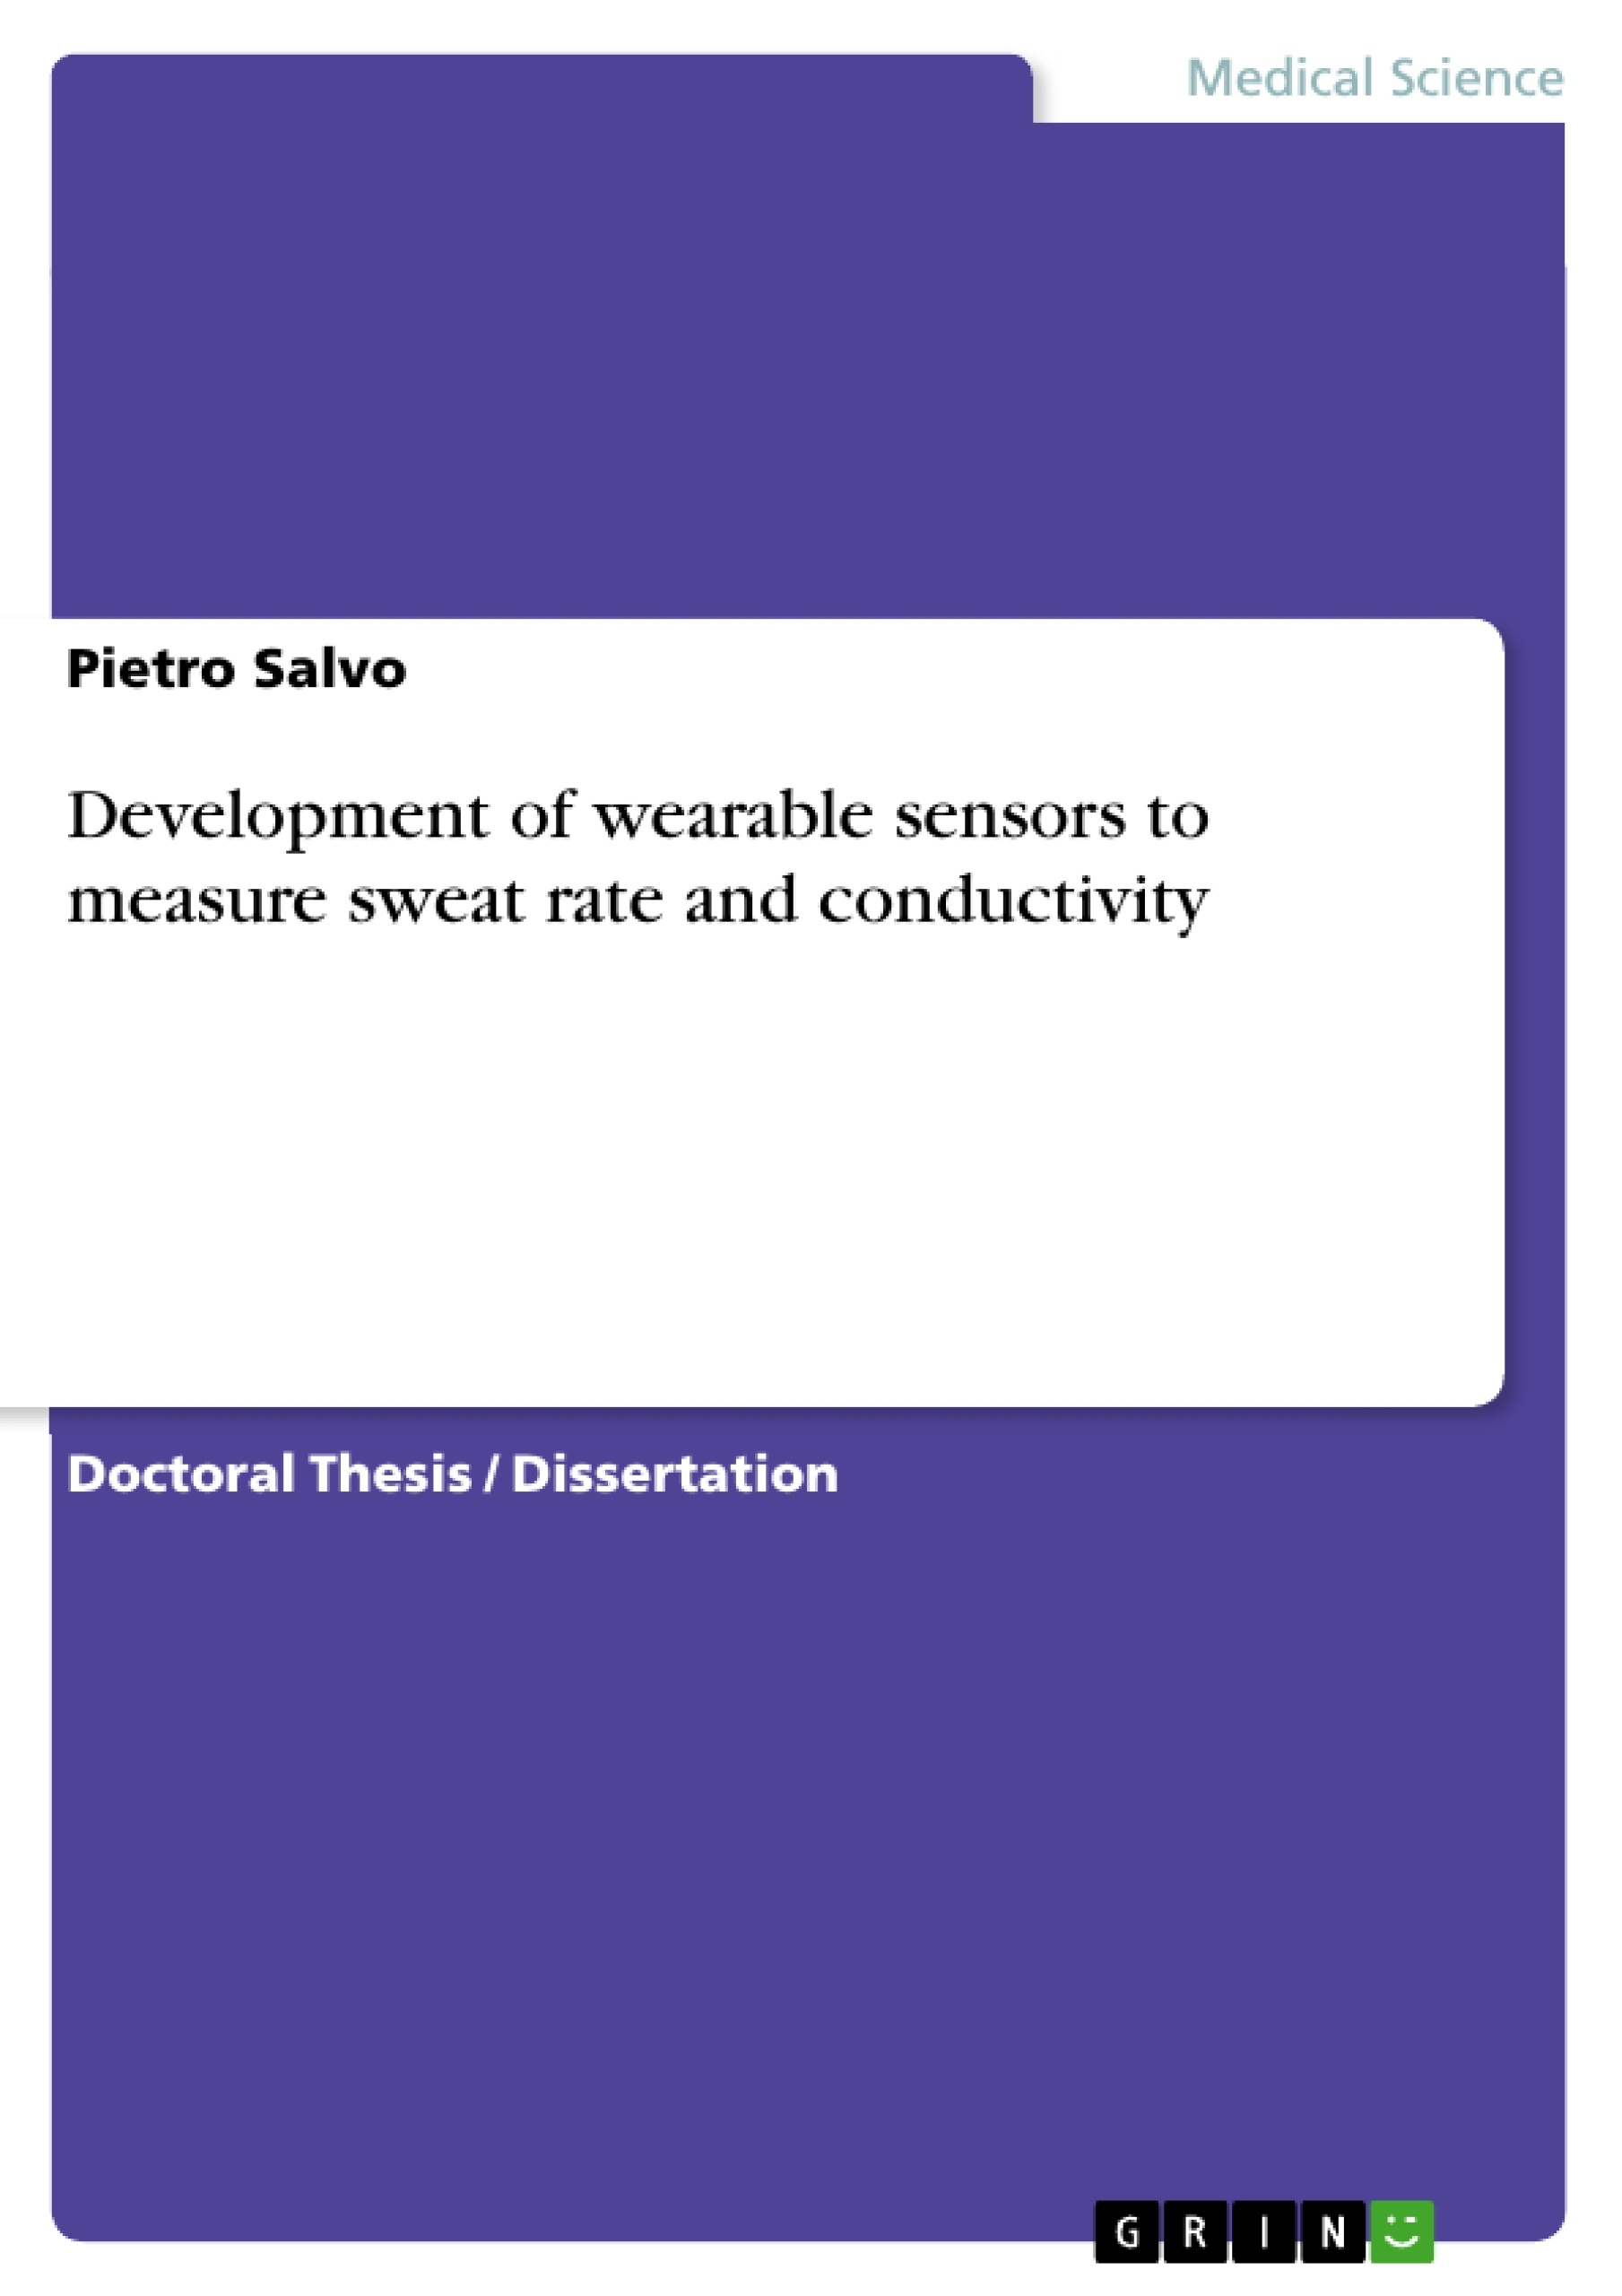 Title: Development of wearable sensors to measure sweat rate and conductivity